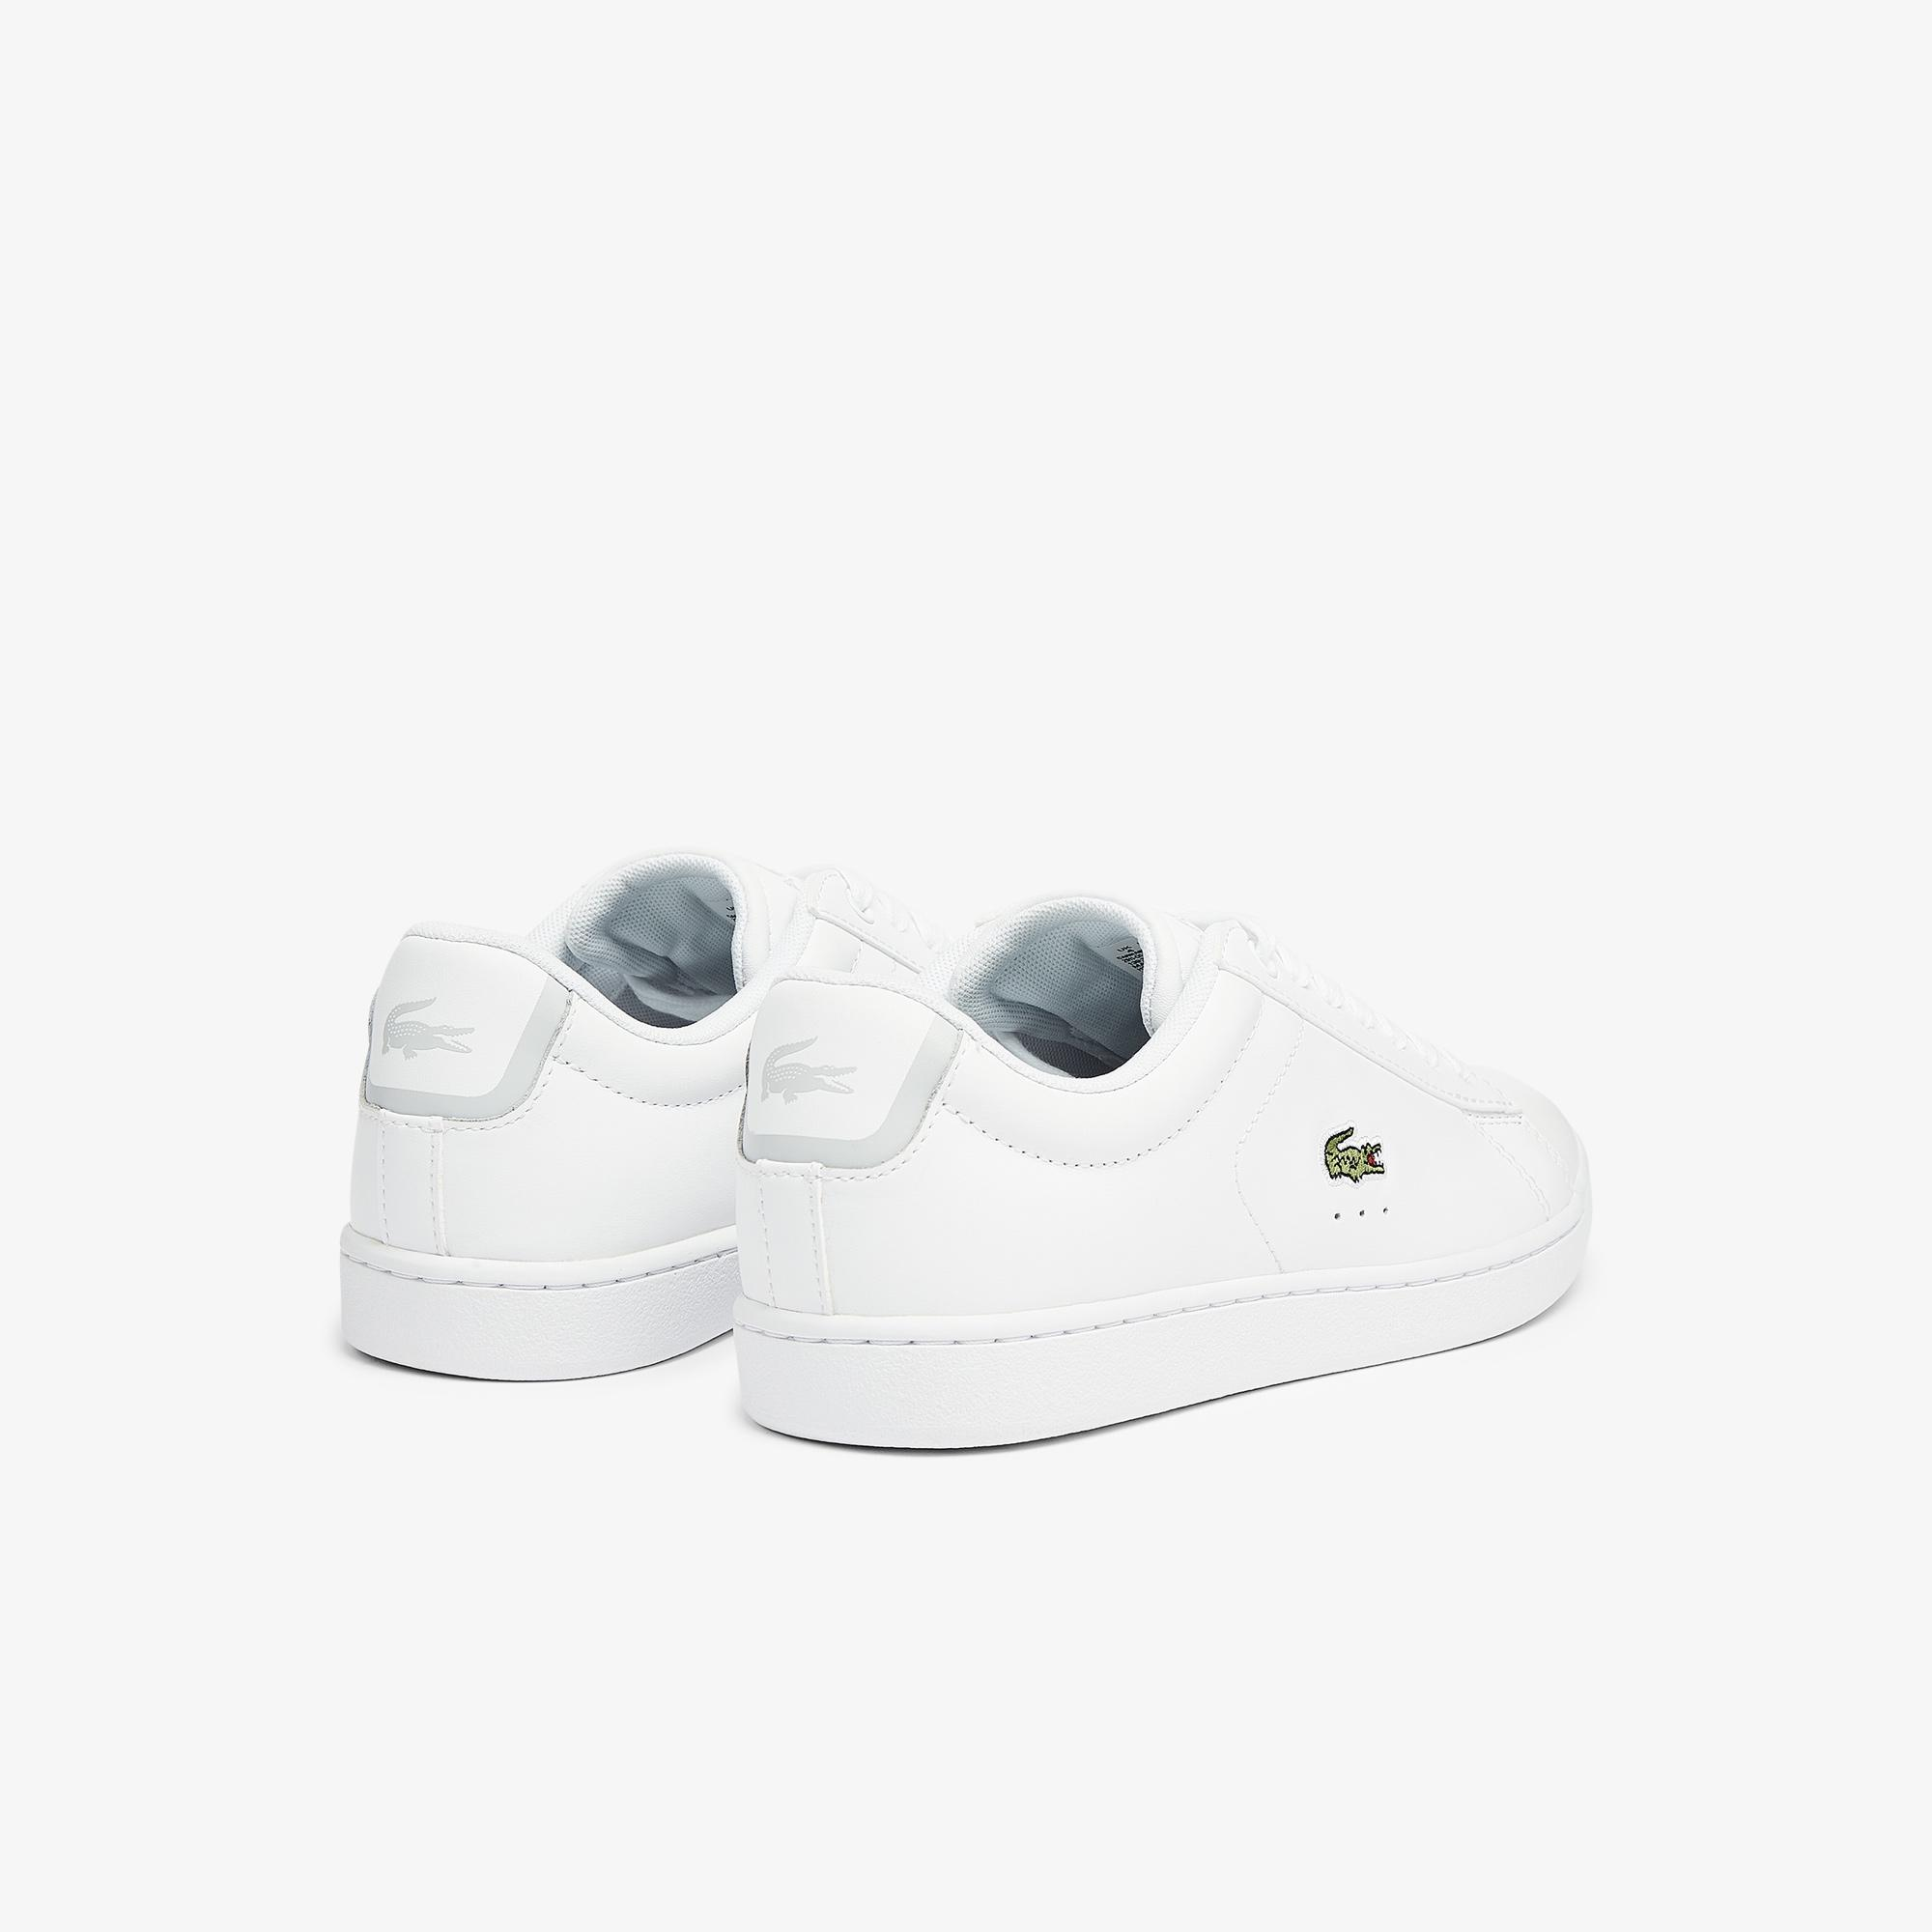 Lacoste Women's Carnaby Evo Bl 21 1 Sfa Shoes